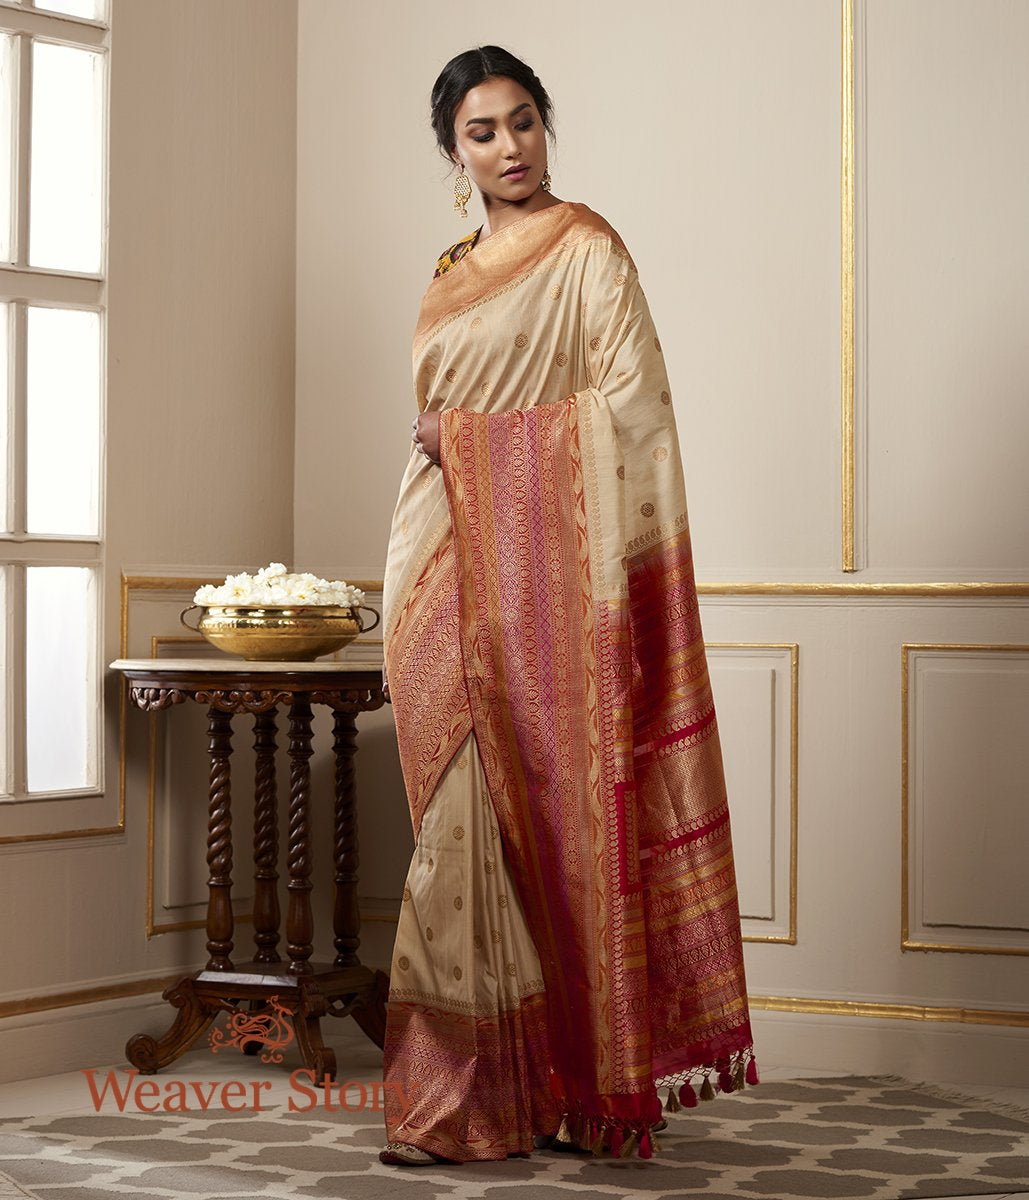 Handwoven Offwhite Tusser Silk Banarasi with Booti and Meenakari Border